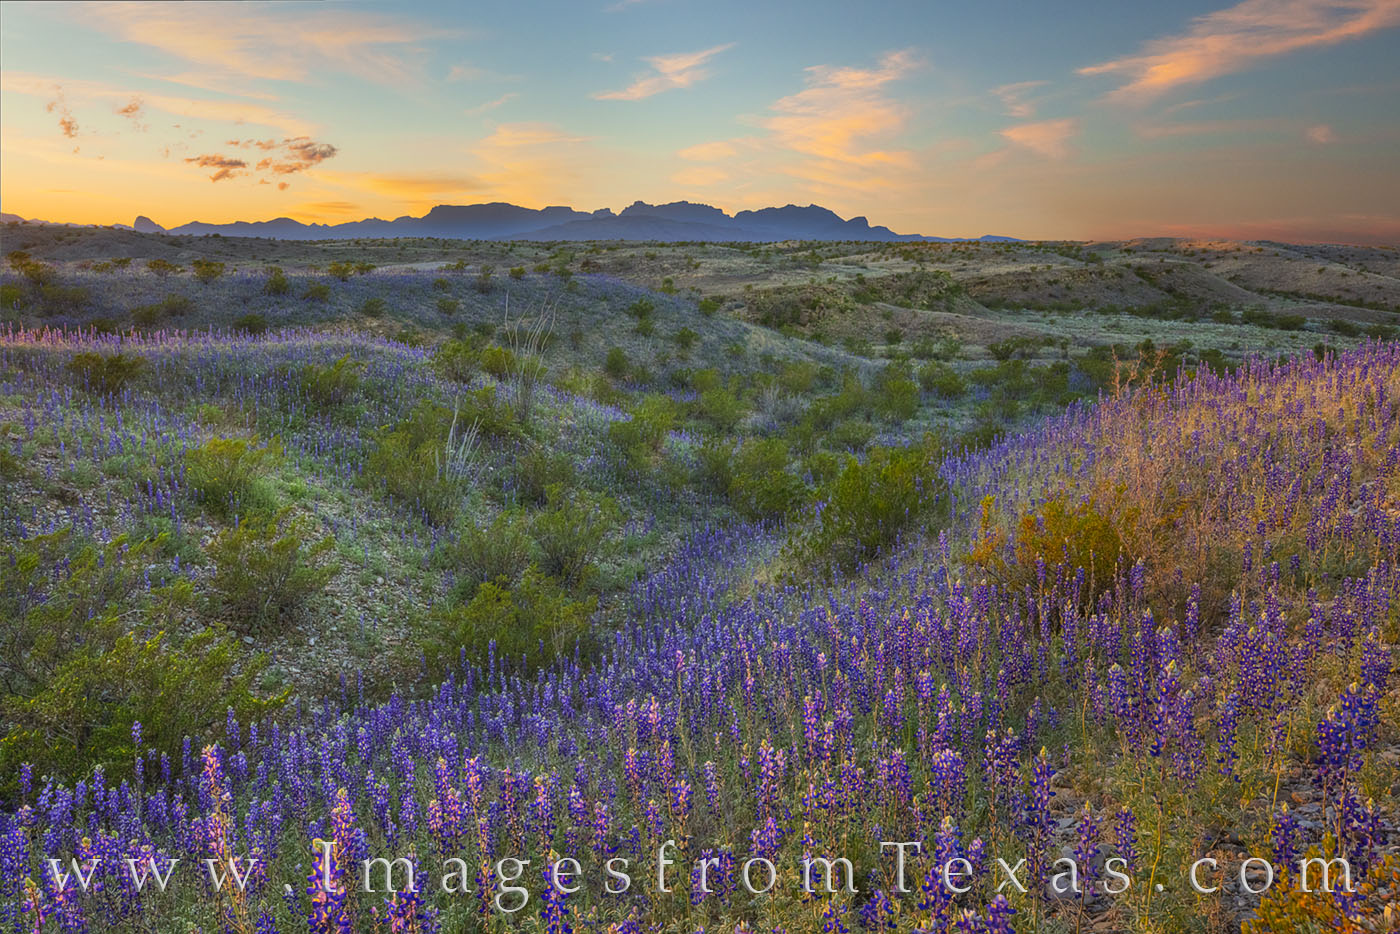 bluebonnets, east river road, rio grande, big bend, national park, texas parks, desert, chihuahuan desert, chisos mountains, dirt road, spring bloom, photo